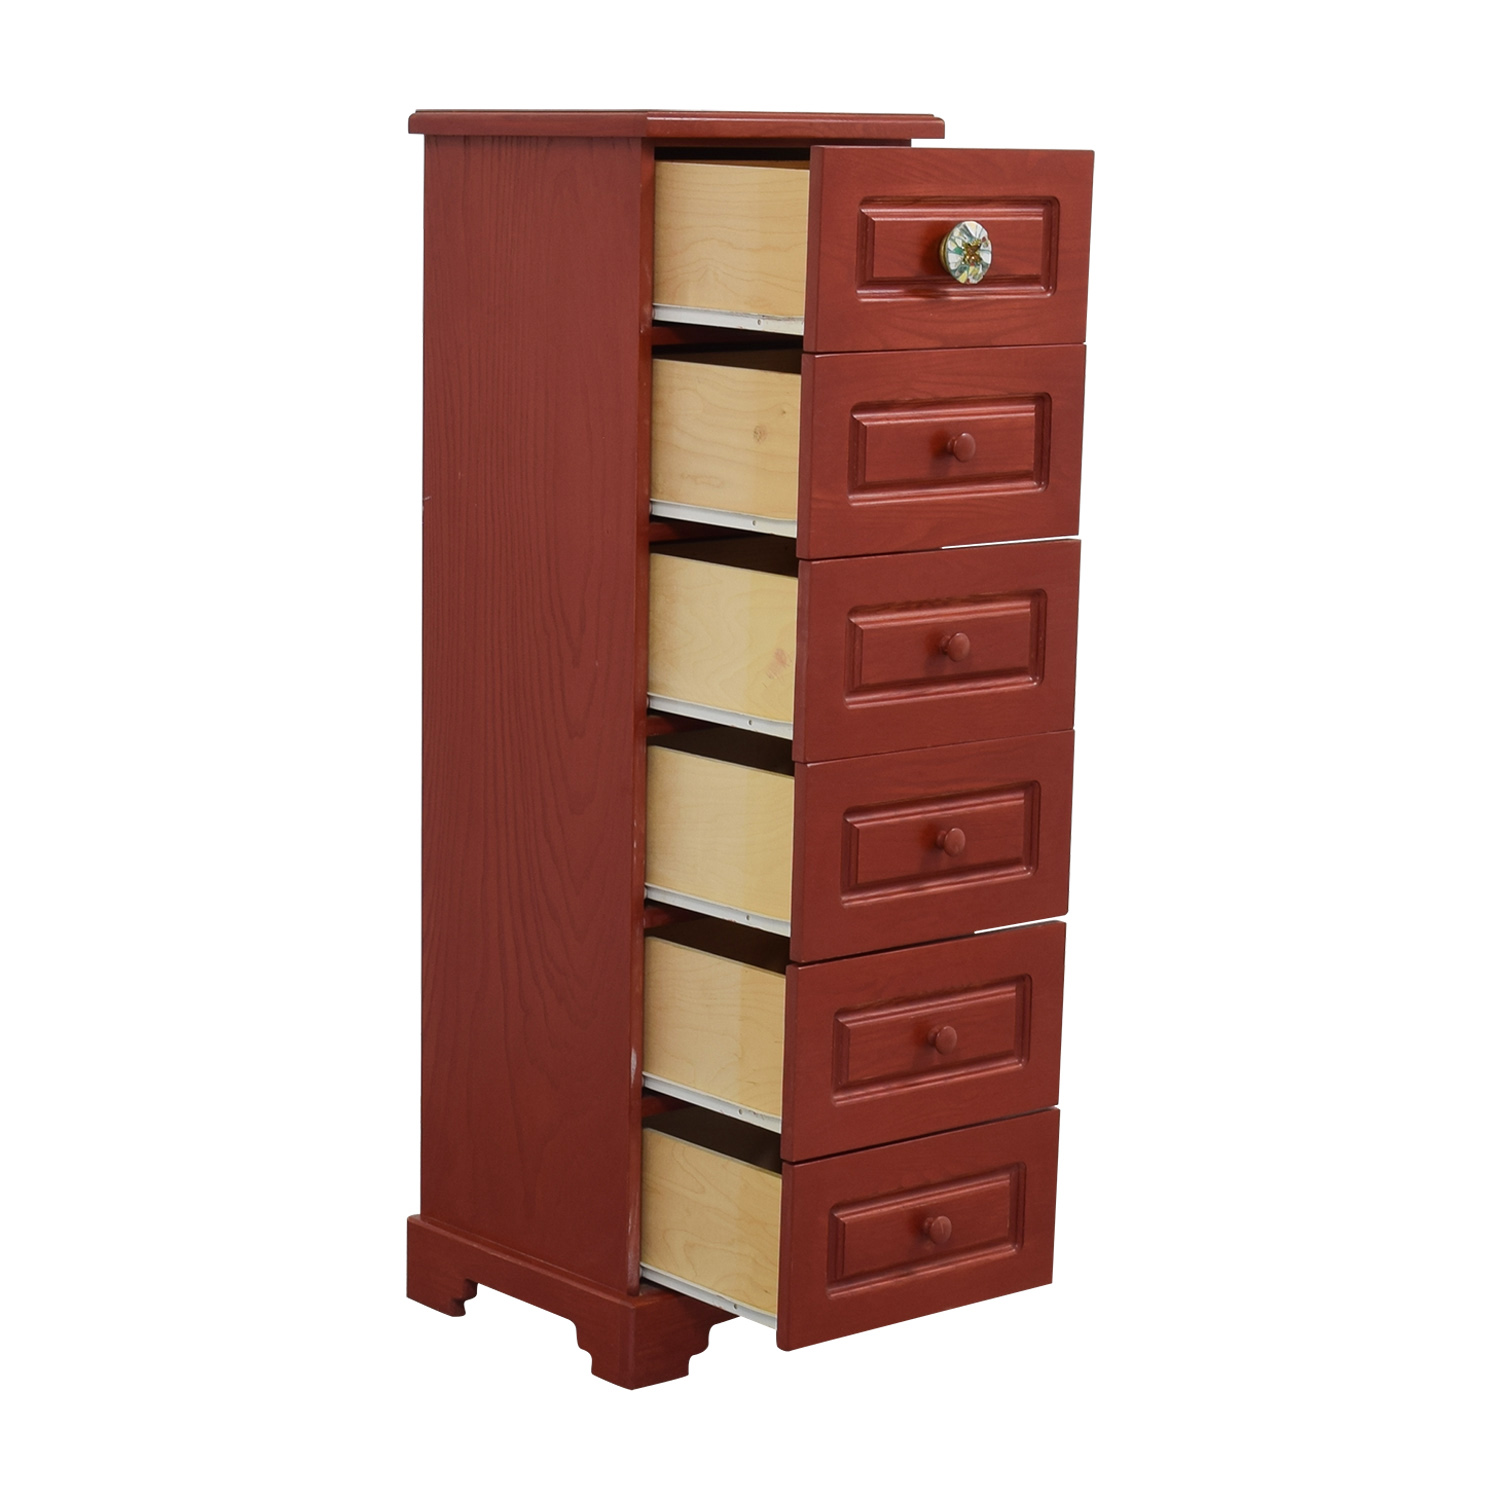 63 off red six drawer tall boy dresser storage. Black Bedroom Furniture Sets. Home Design Ideas